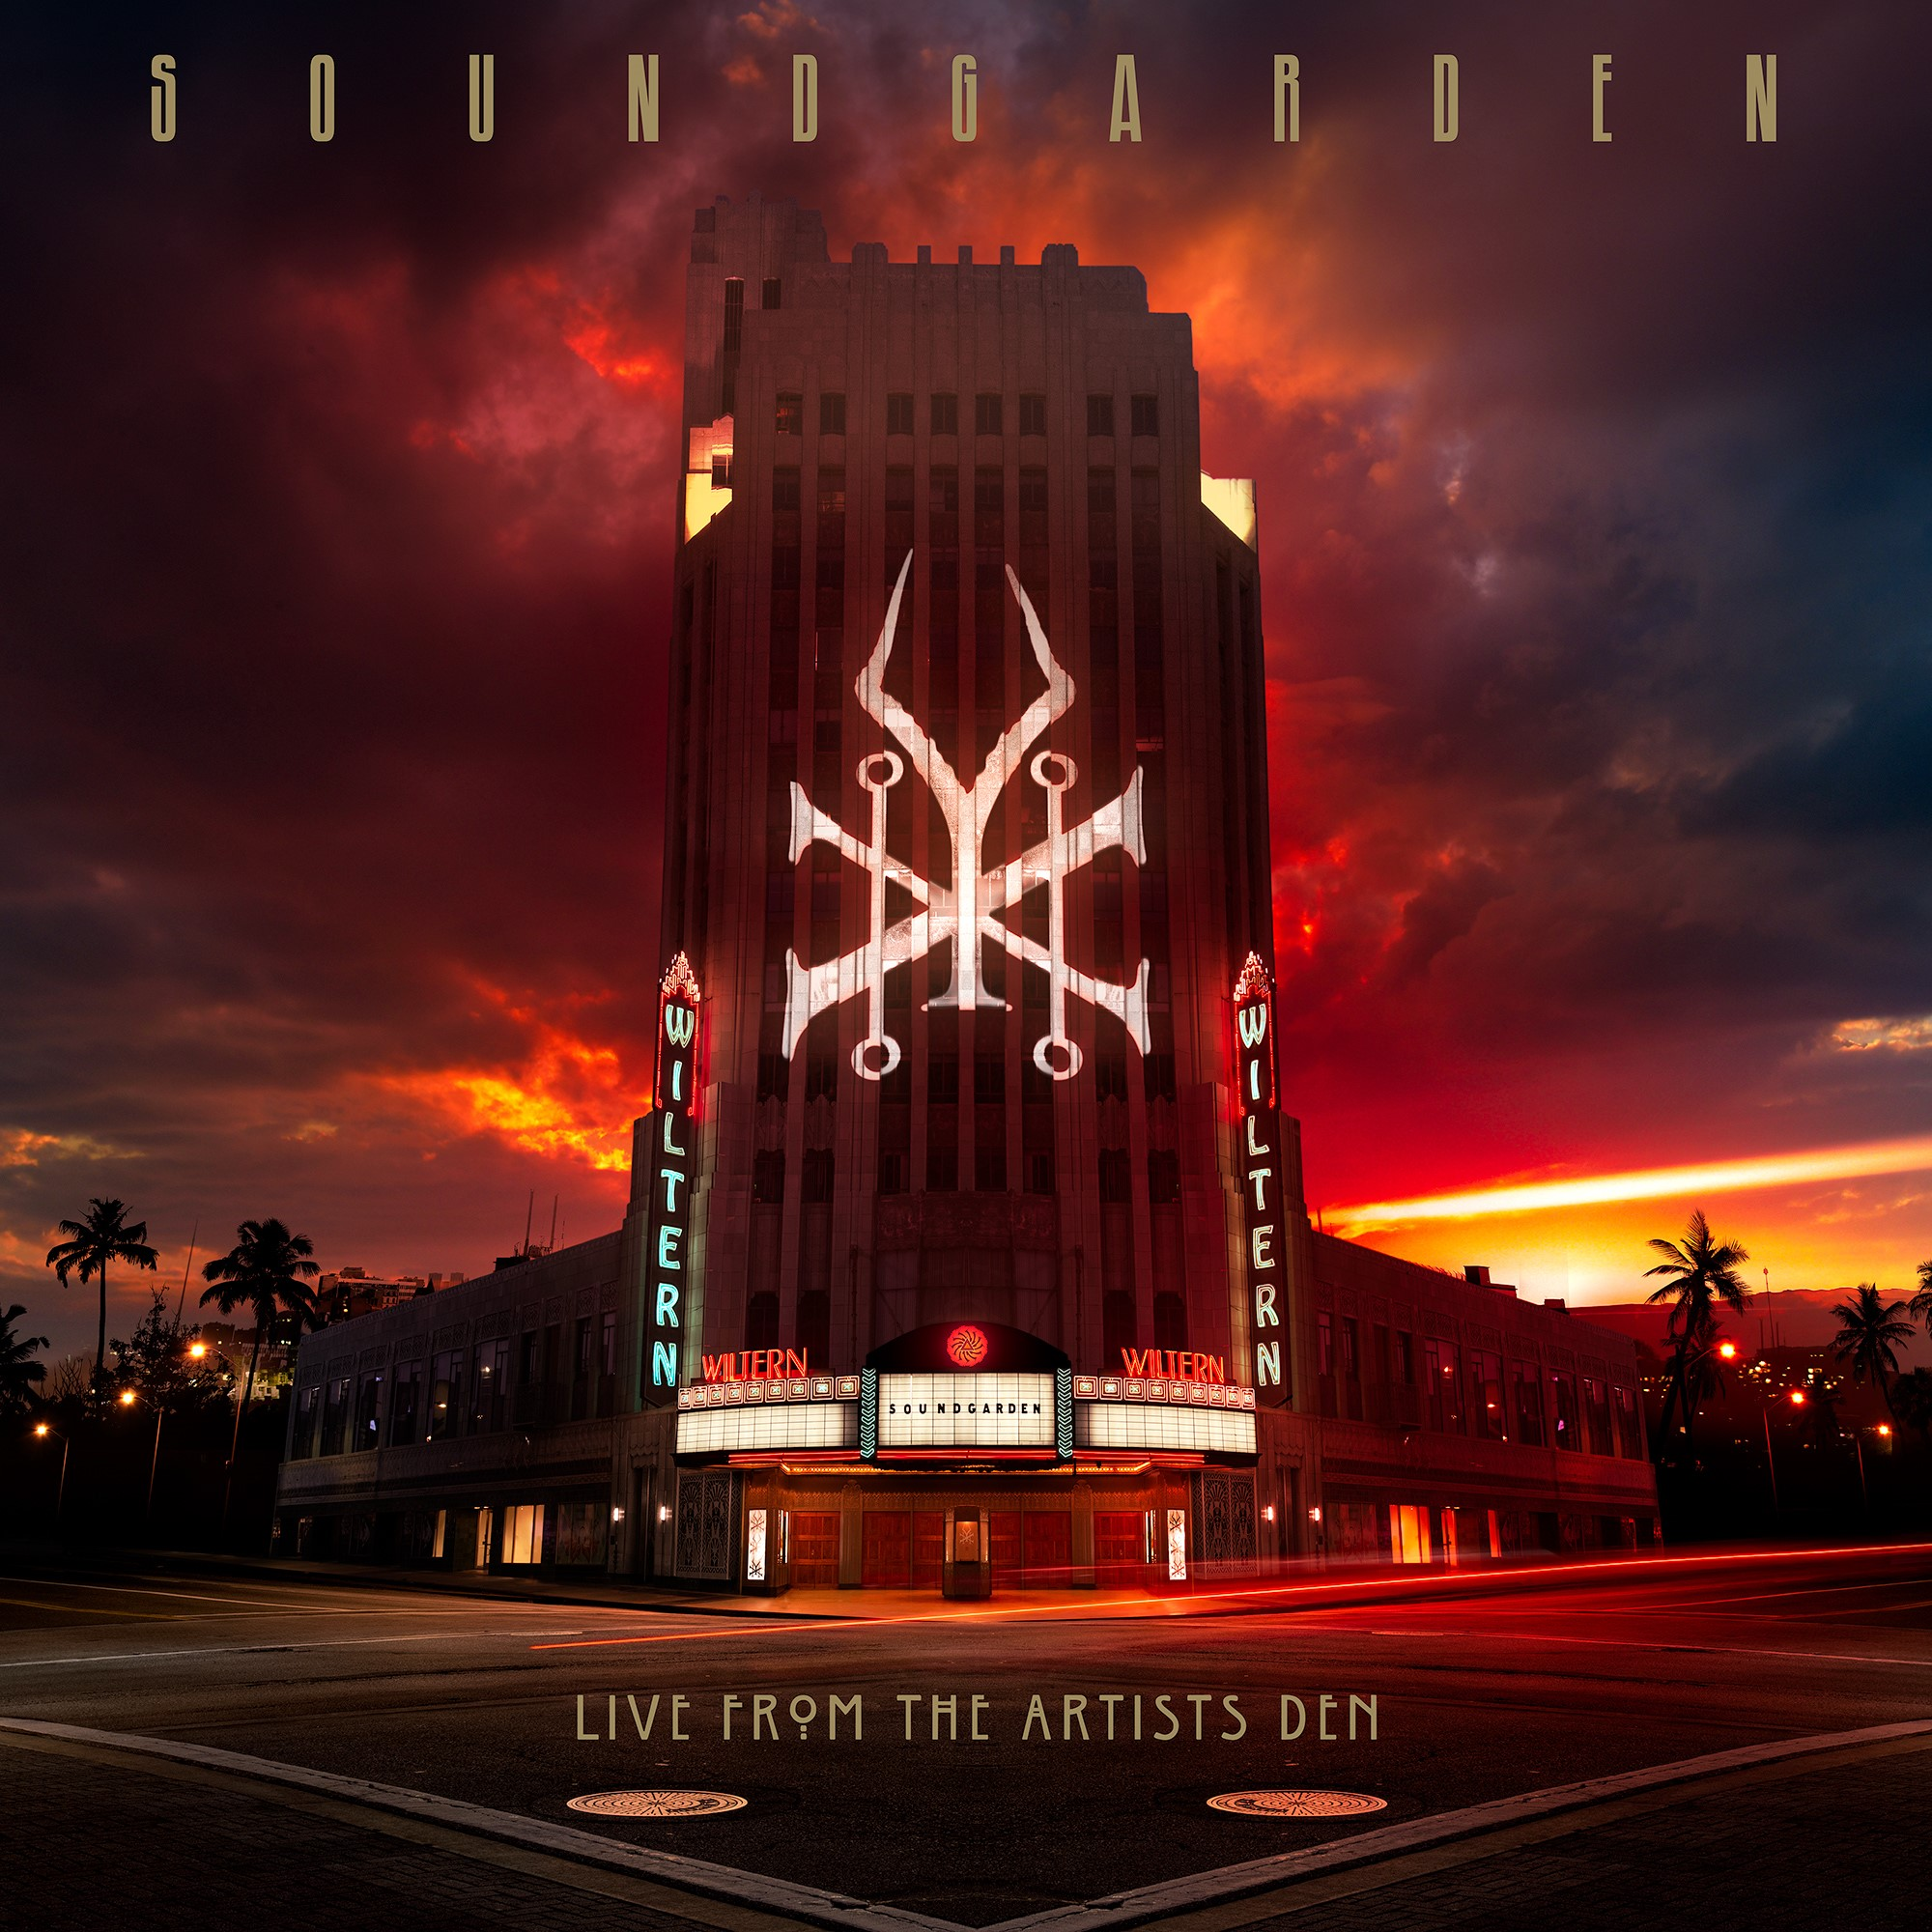 dd69ff8372 Pre-Order Soundgarden Live From The Artists Den!